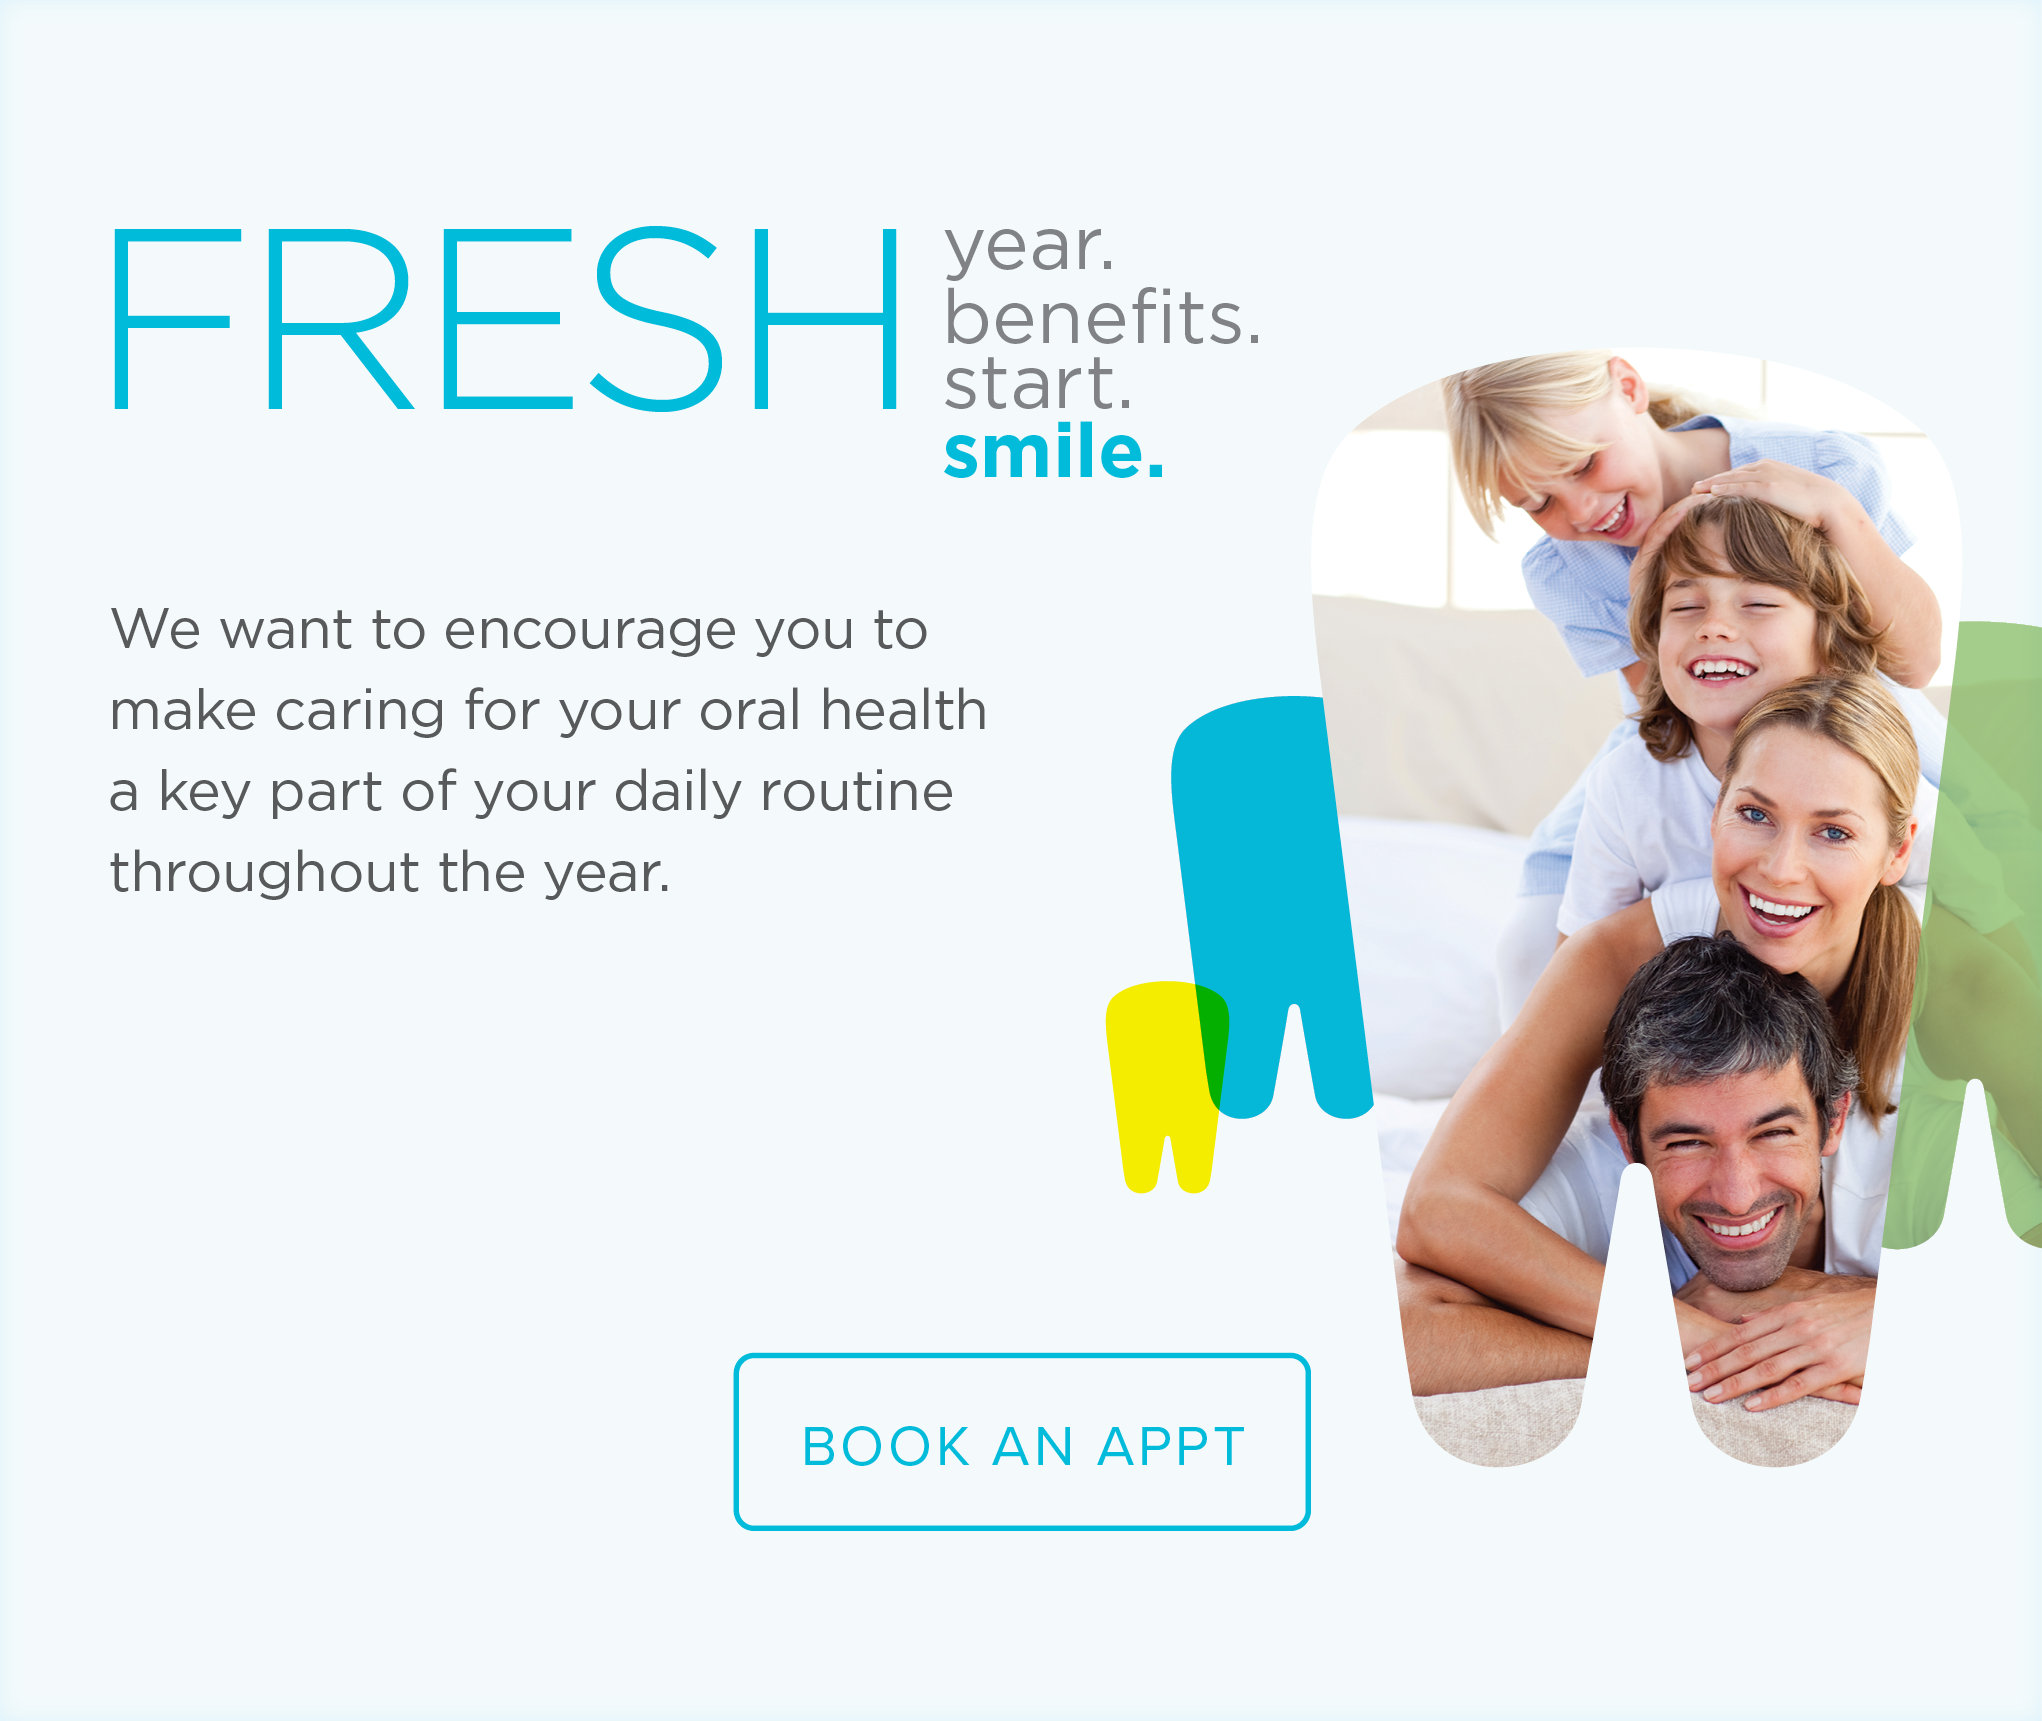 Knollwood  Dentistry - Make the Most of Your Benefits